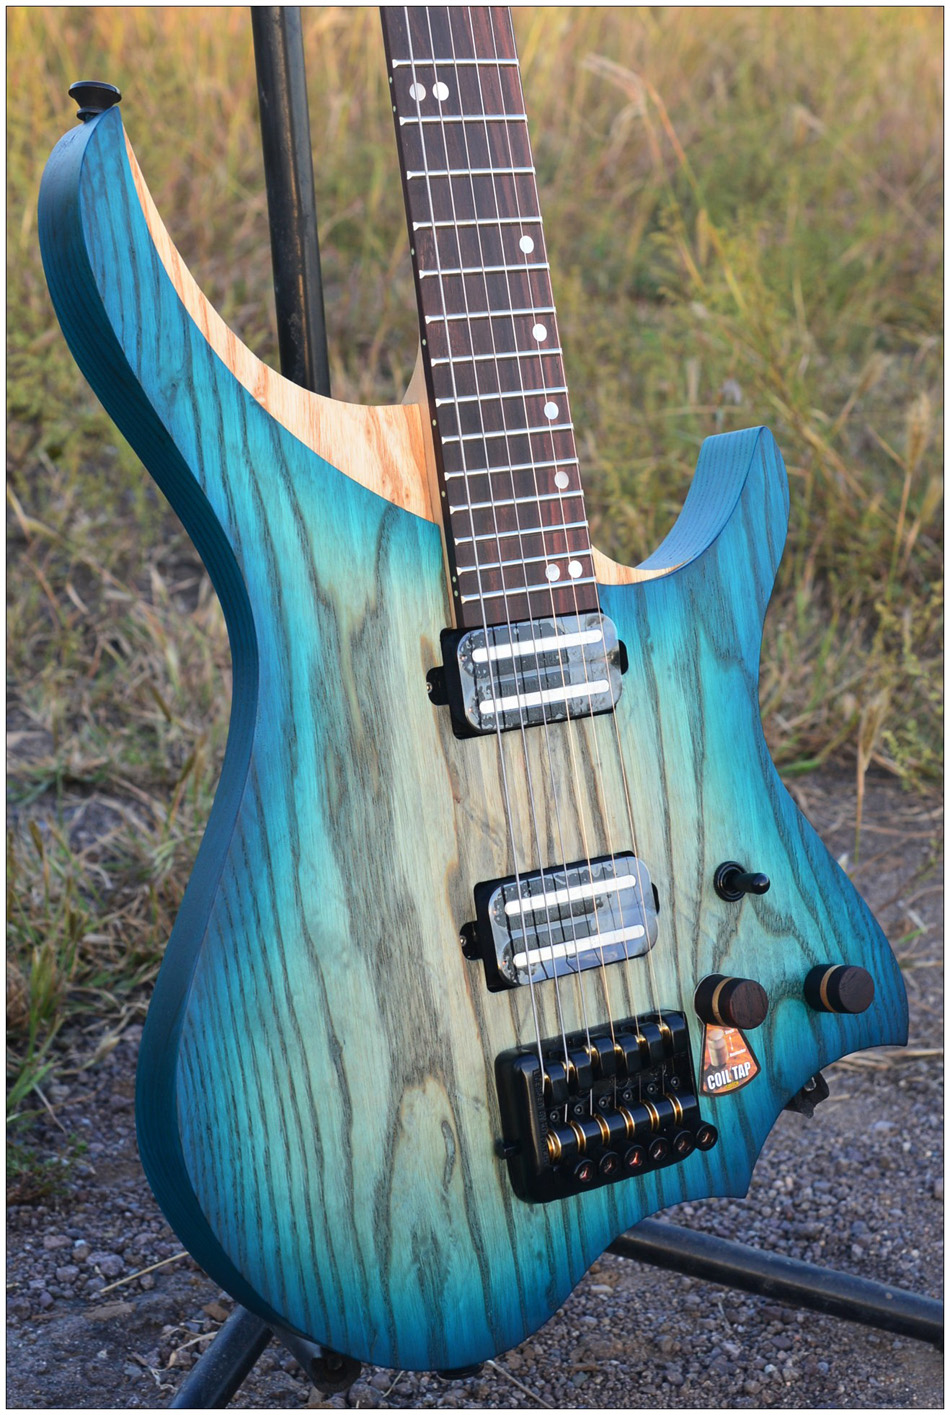 Nk Headless Electric Guitar Steinberger Style Model Blue